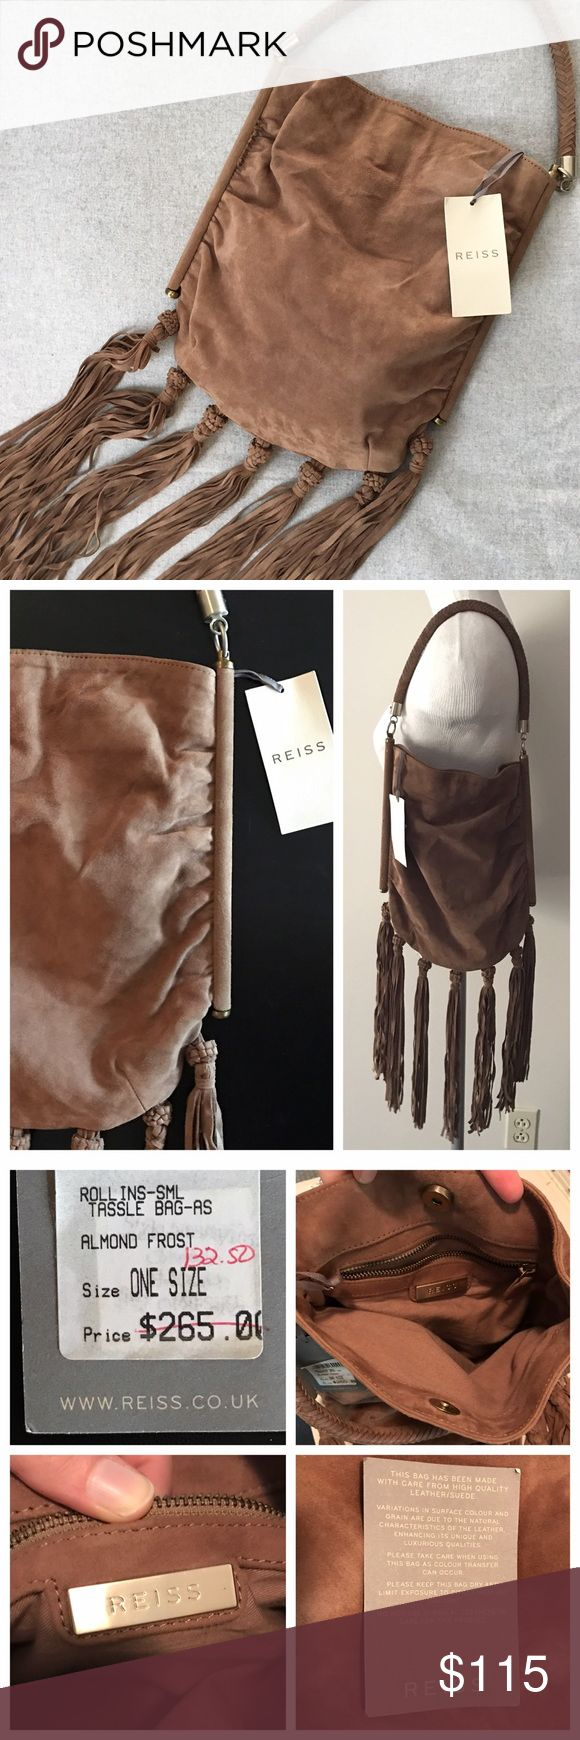 Adorable Soft Suede Tan Fringe Boho Reiss Handbag Brand new! I lovvvvveee this bag, but just have never used it. Purchased on sale, the suede is real, high quality leather and is buttery soft. Beautiful fringe along the bottom, metal sides with rusching and a braided handle. Size: 12 inches tall, 11 inches wide, the fringe adds another 12 inches in length. Reiss Bags Shoulder Bags